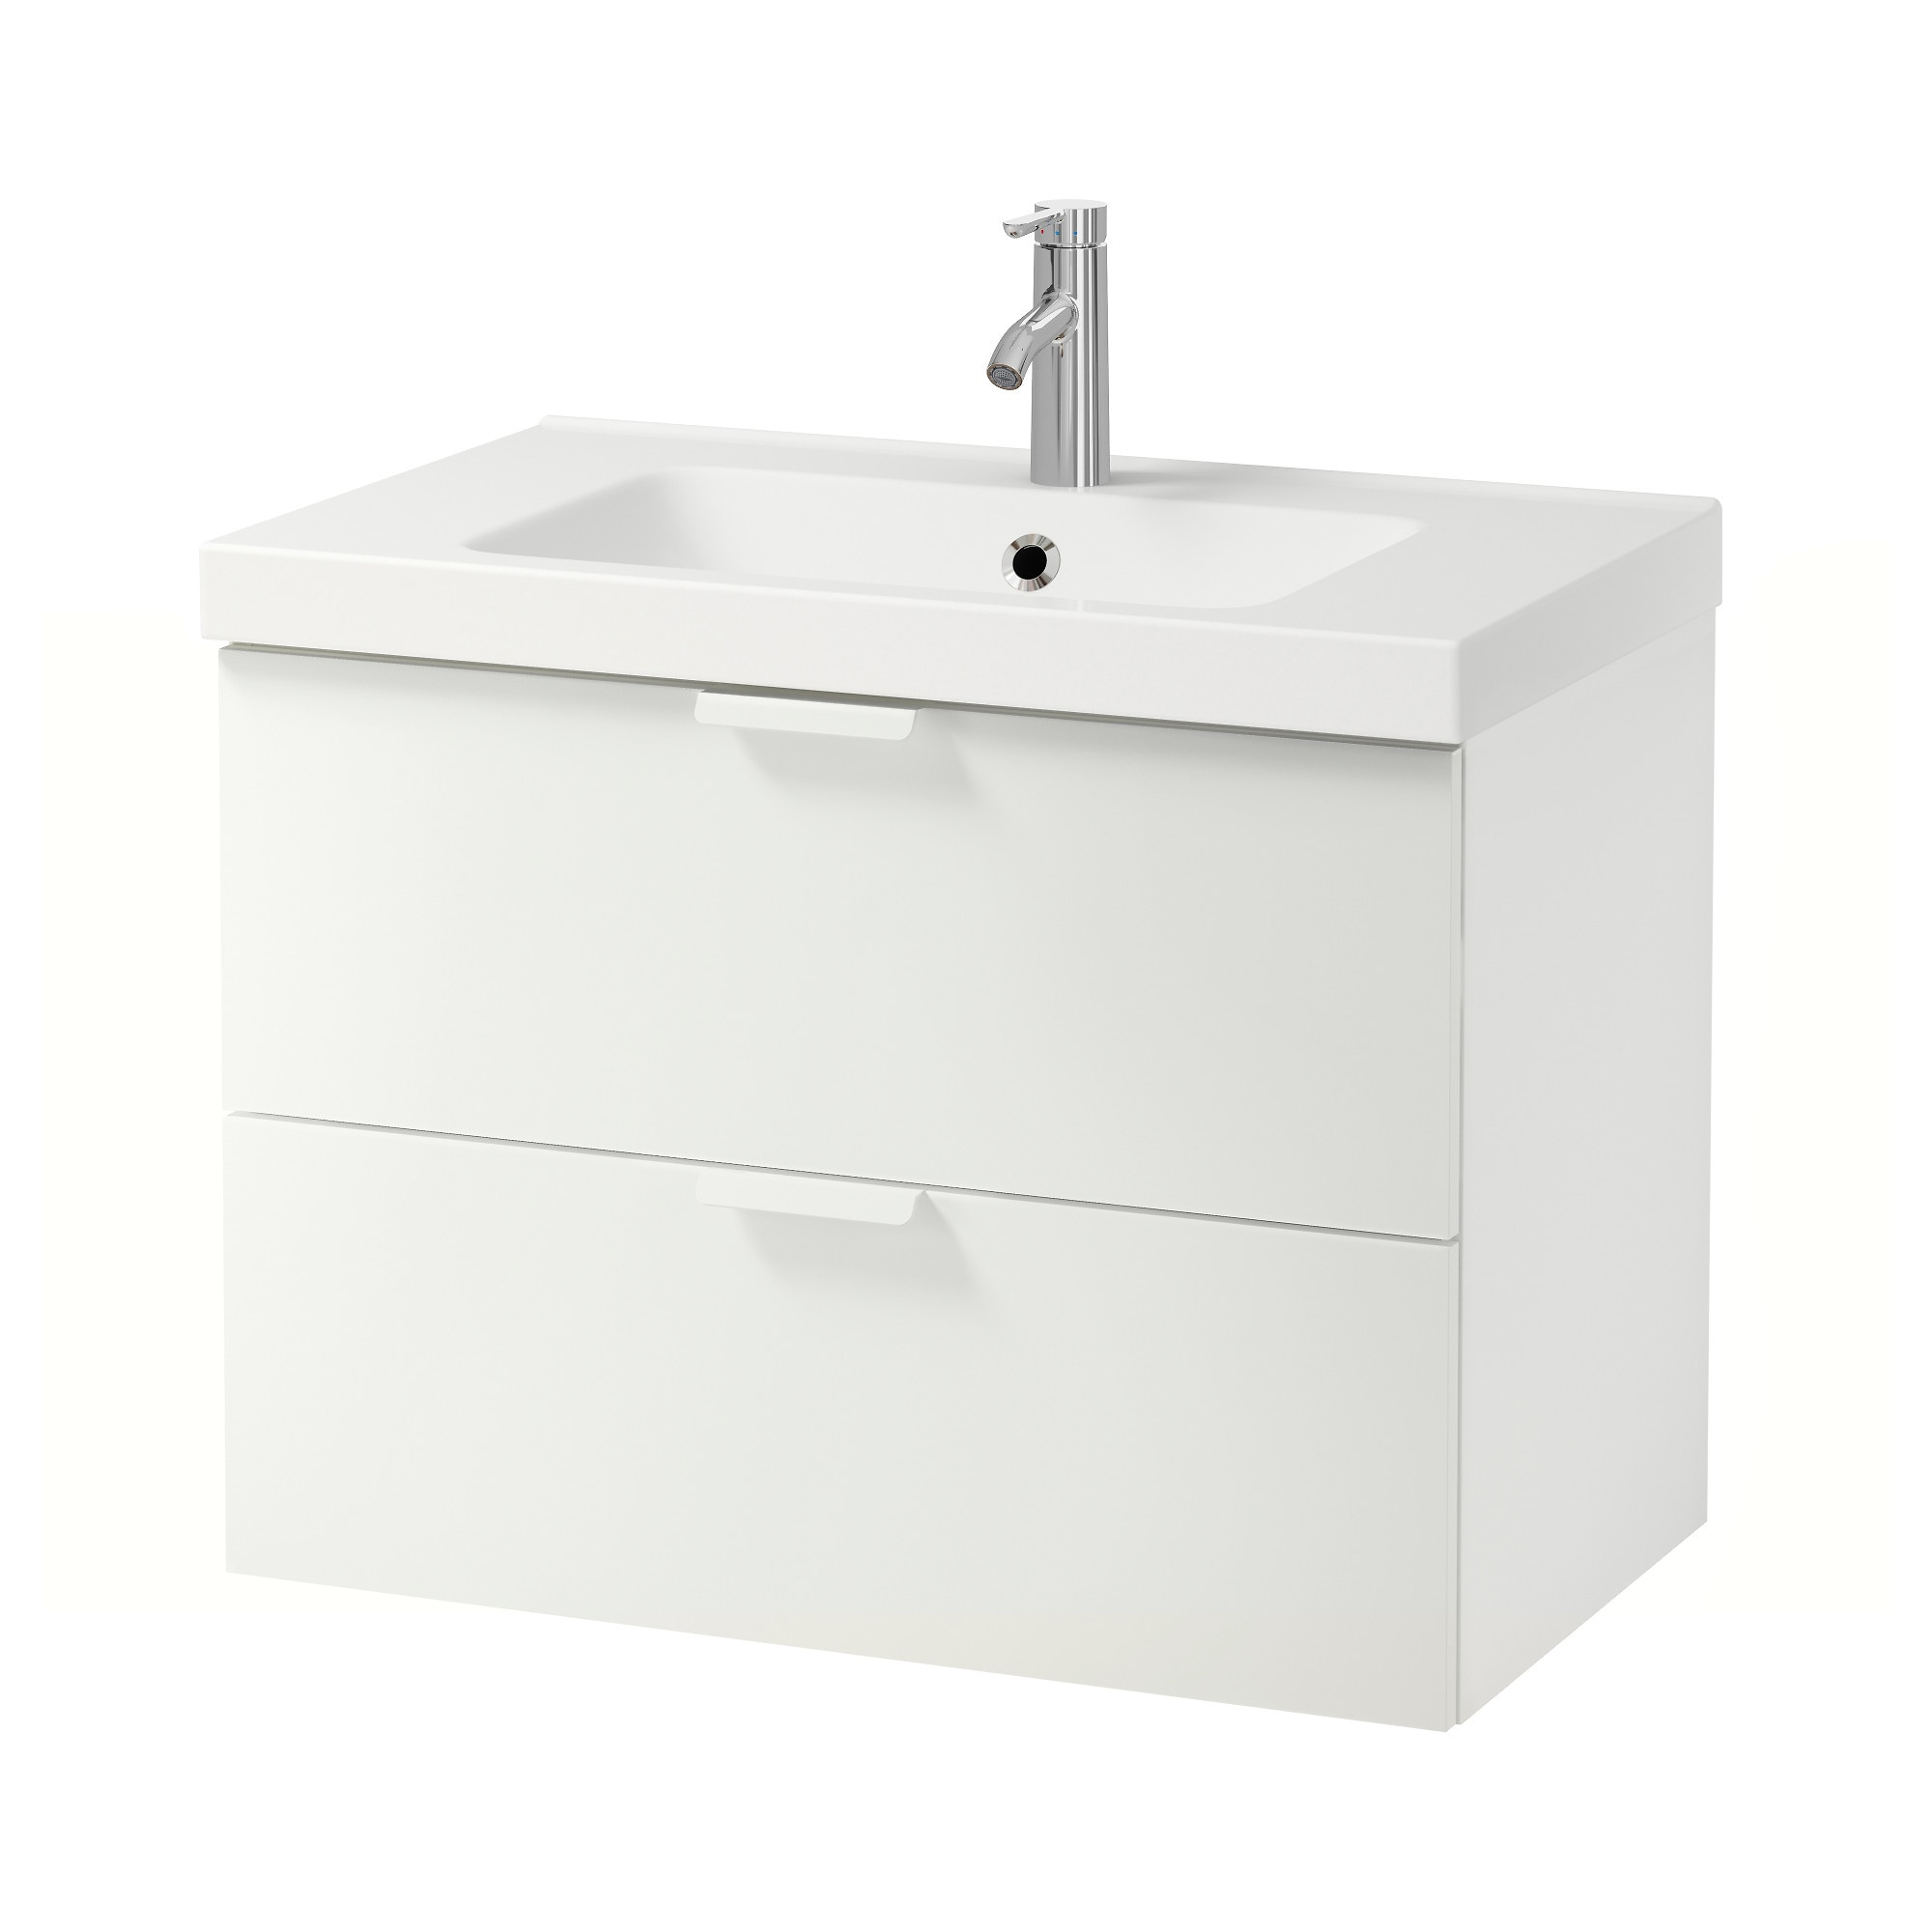 GODMORGON / ODENSVIK Sink cabinet with 2 drawers - white, 31 1 ...